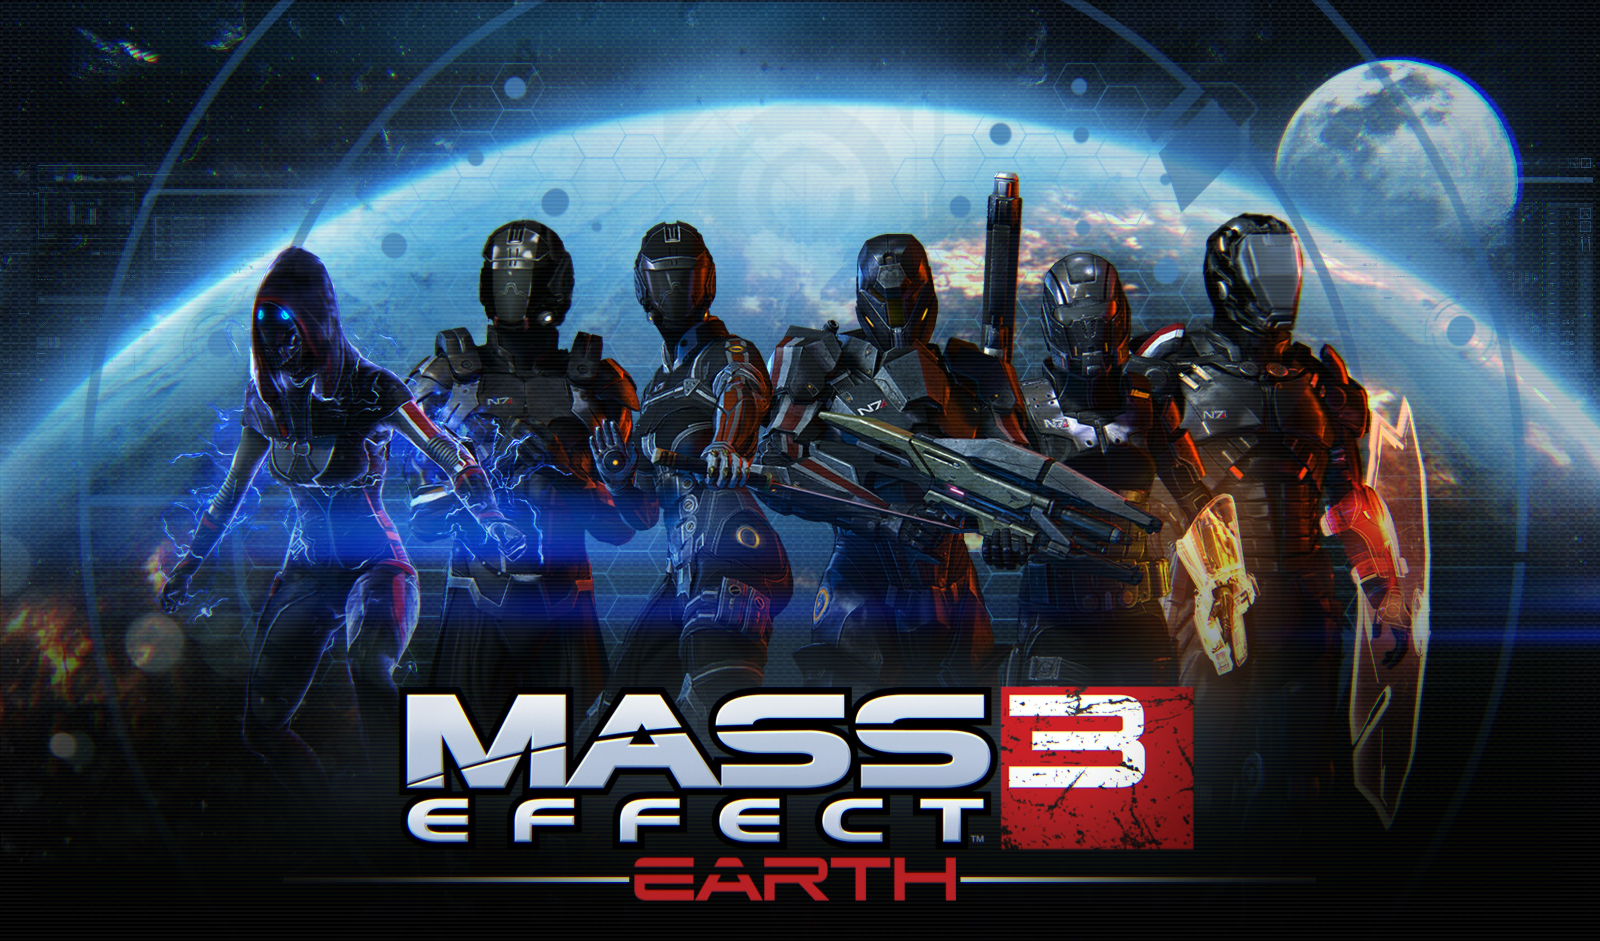 Mass effect picture 27